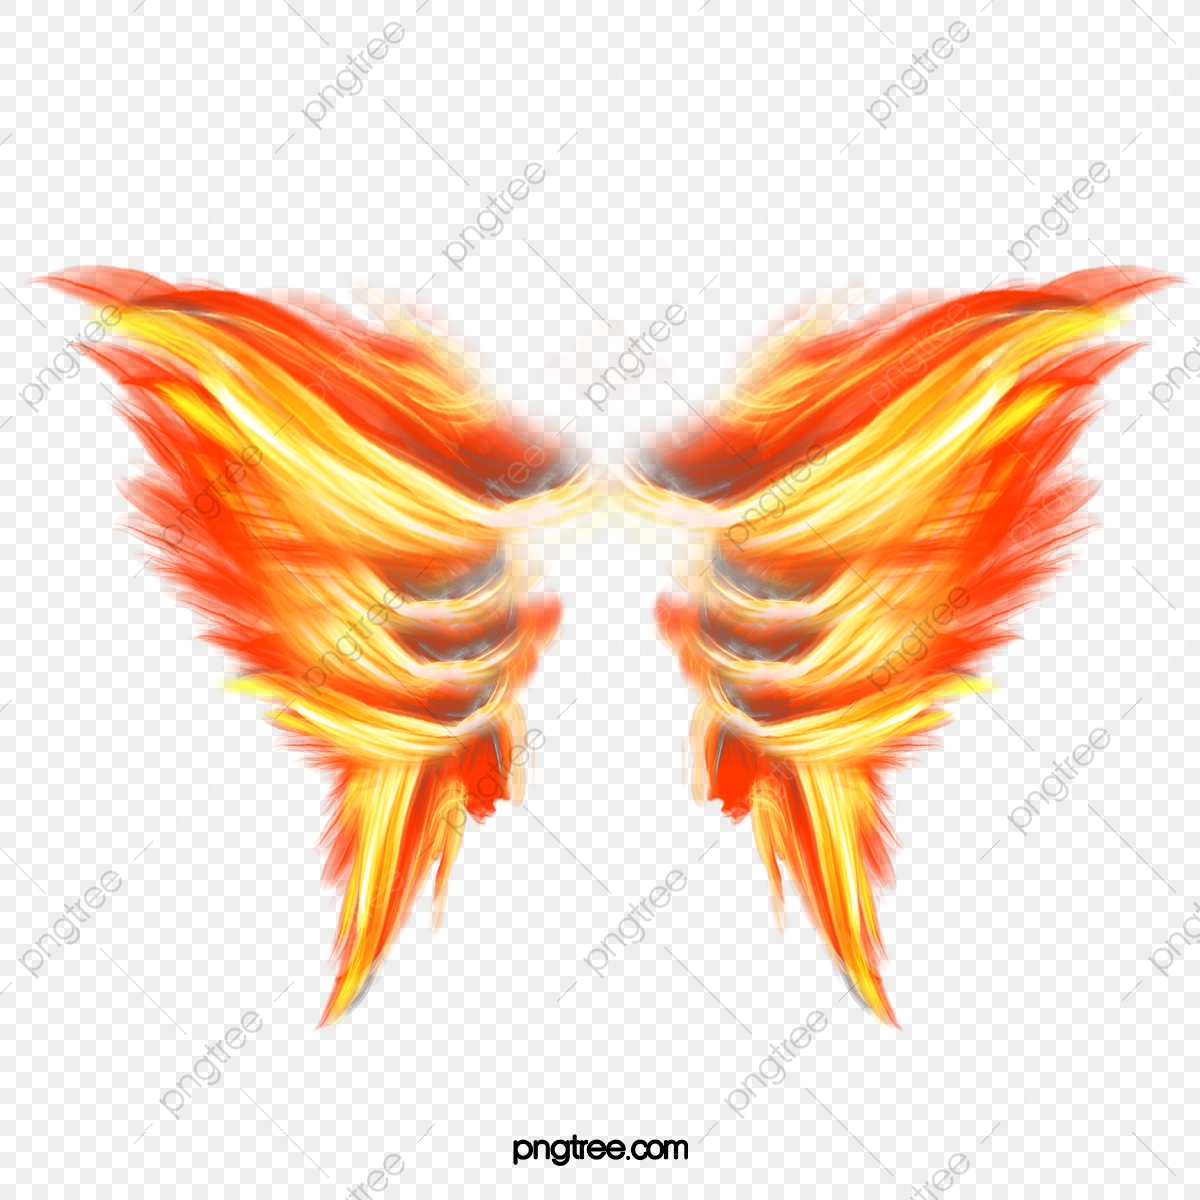 Burning Wings, Wings Clipart, Fire PNG Transparent Clipart Image and.